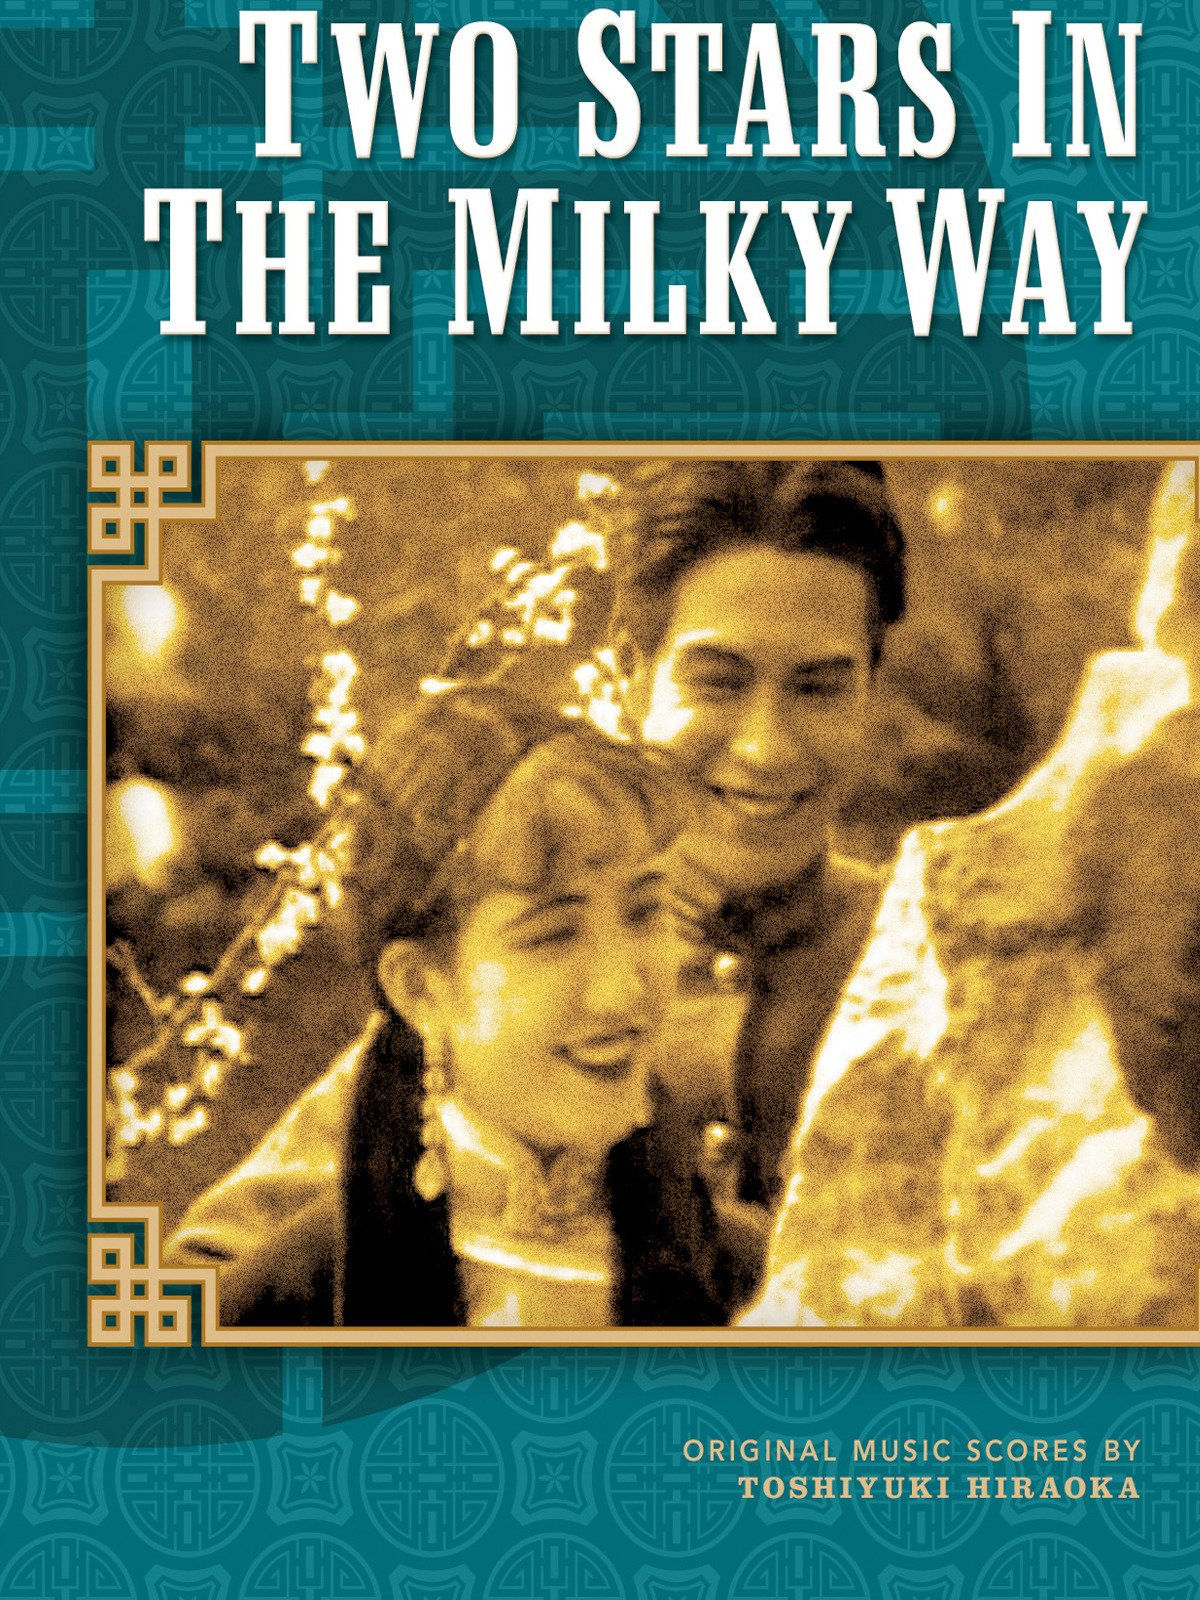 Two Stars In The Milky Way on Amazon Prime Video UK